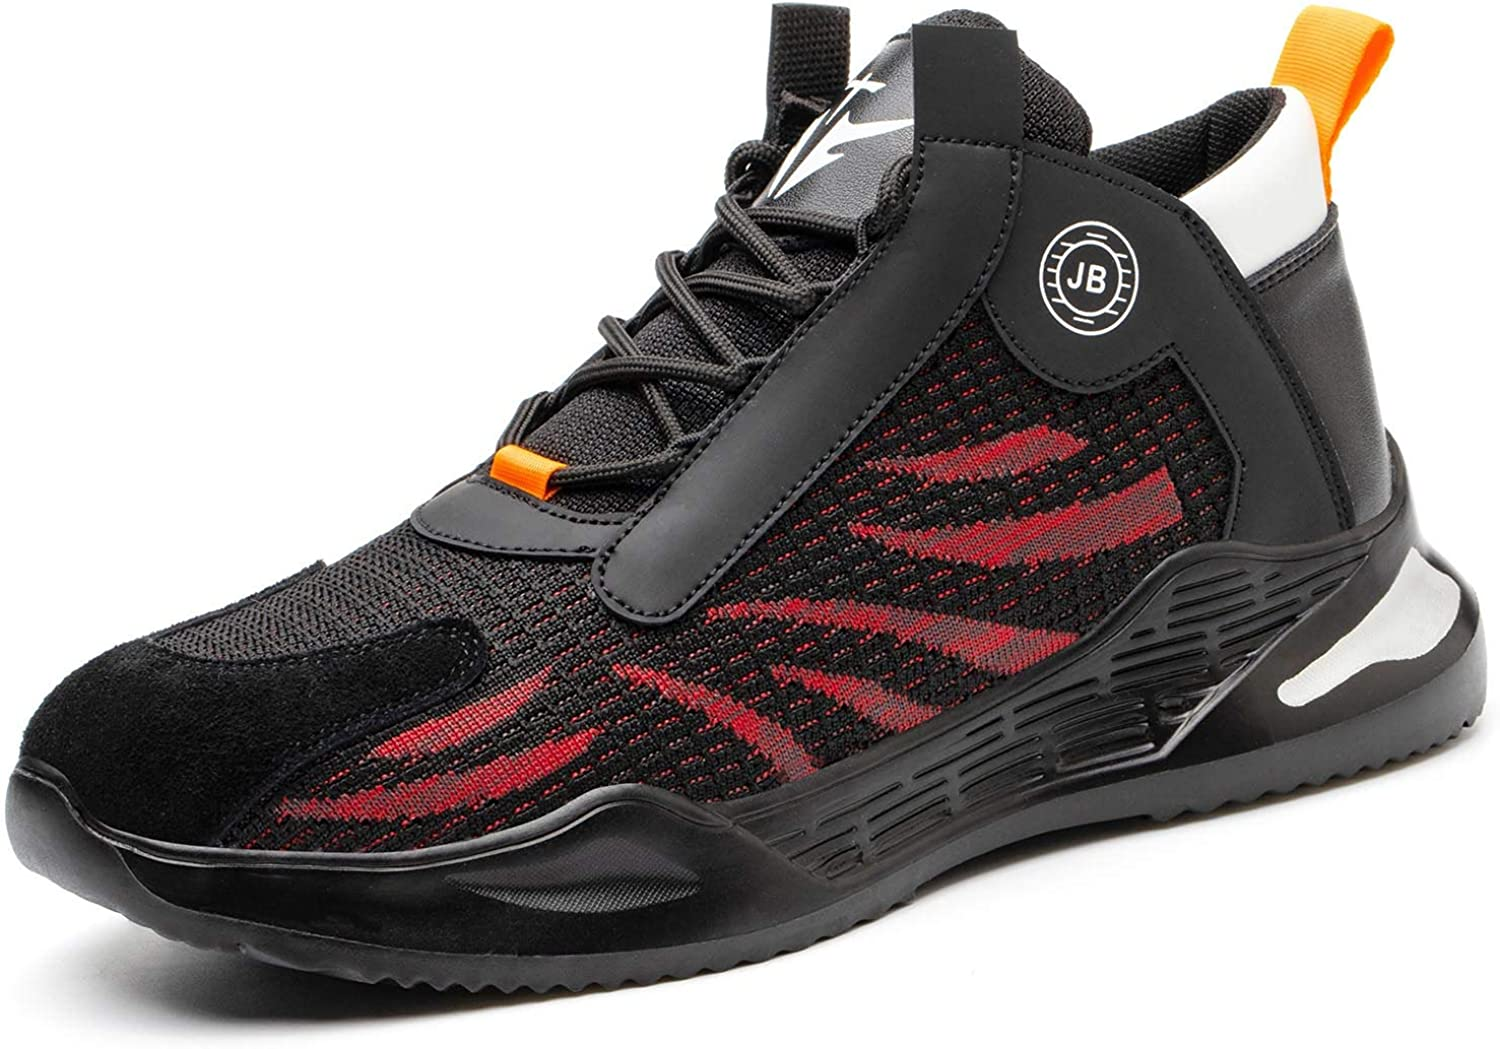 KCVTD Safety Max 52% OFF Work Shoes for Men Lightweight OFFer Women S Breathable